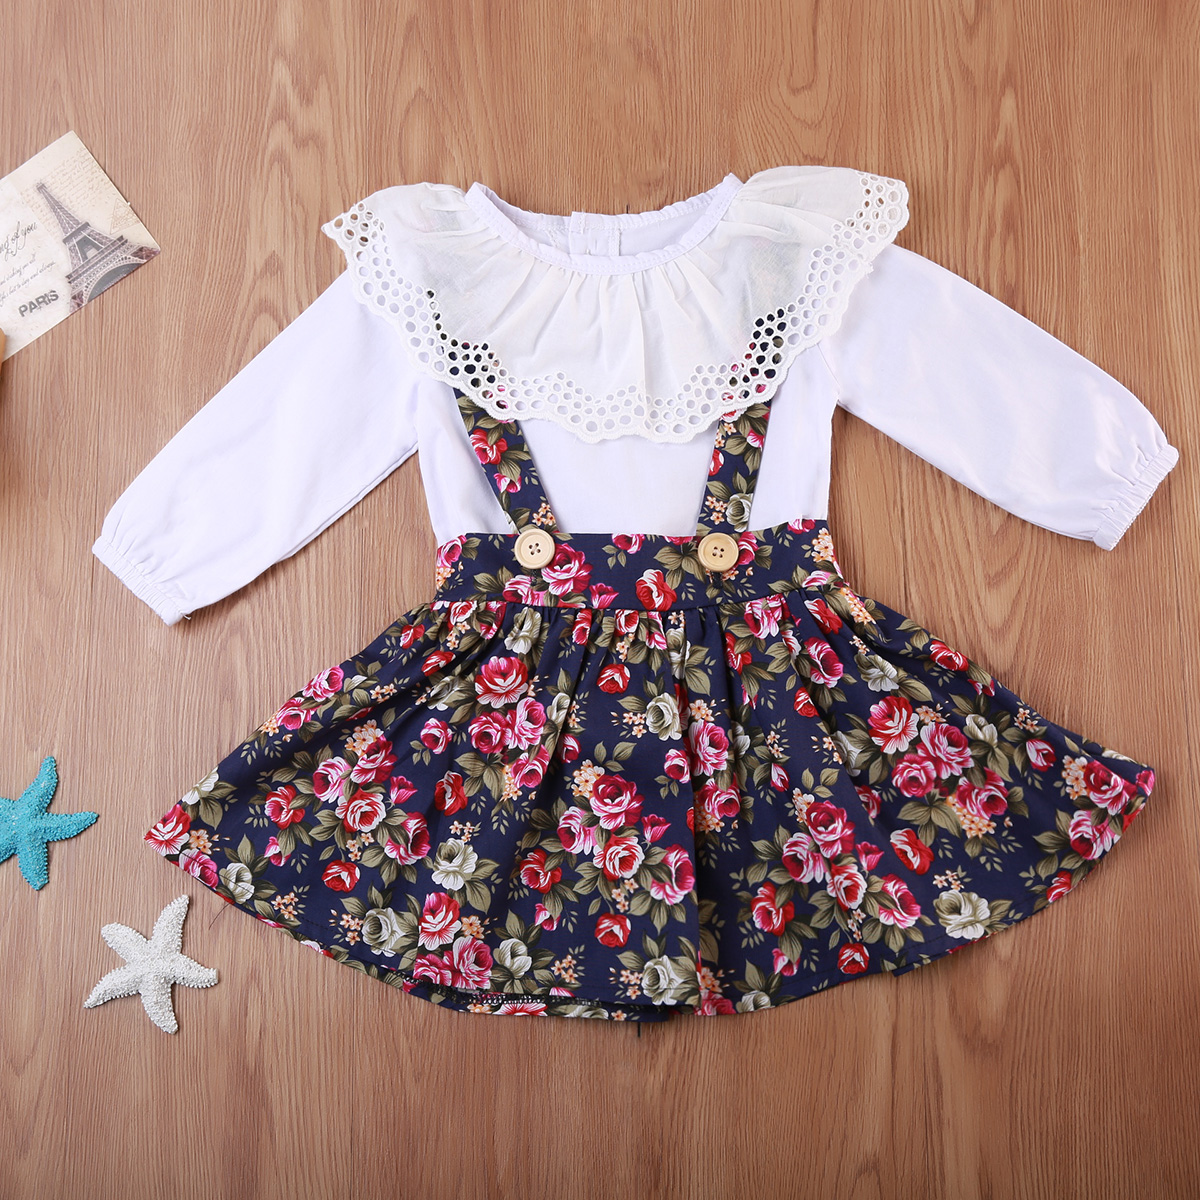 Toddler Baby Girls Blouse Dress Long Sleeve Princess Party Pageant Enfant Girl Flower Top Dresses Kids Clothes Set 2PCS Lovely